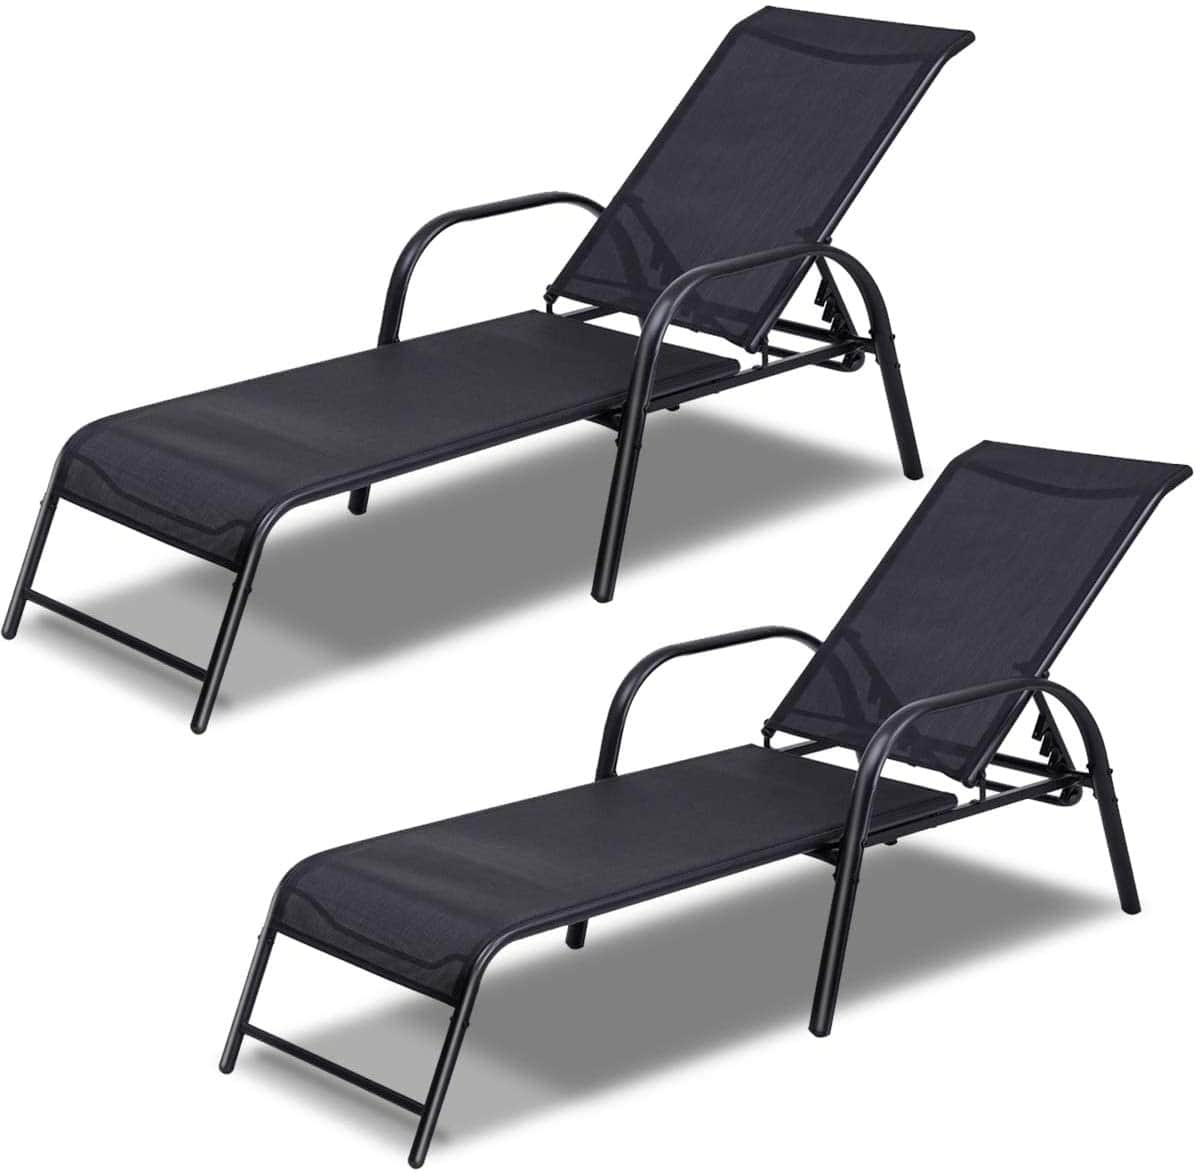 2 Pcs Outdoor Chaise Lounge Chair $199.99 + Free Shipping